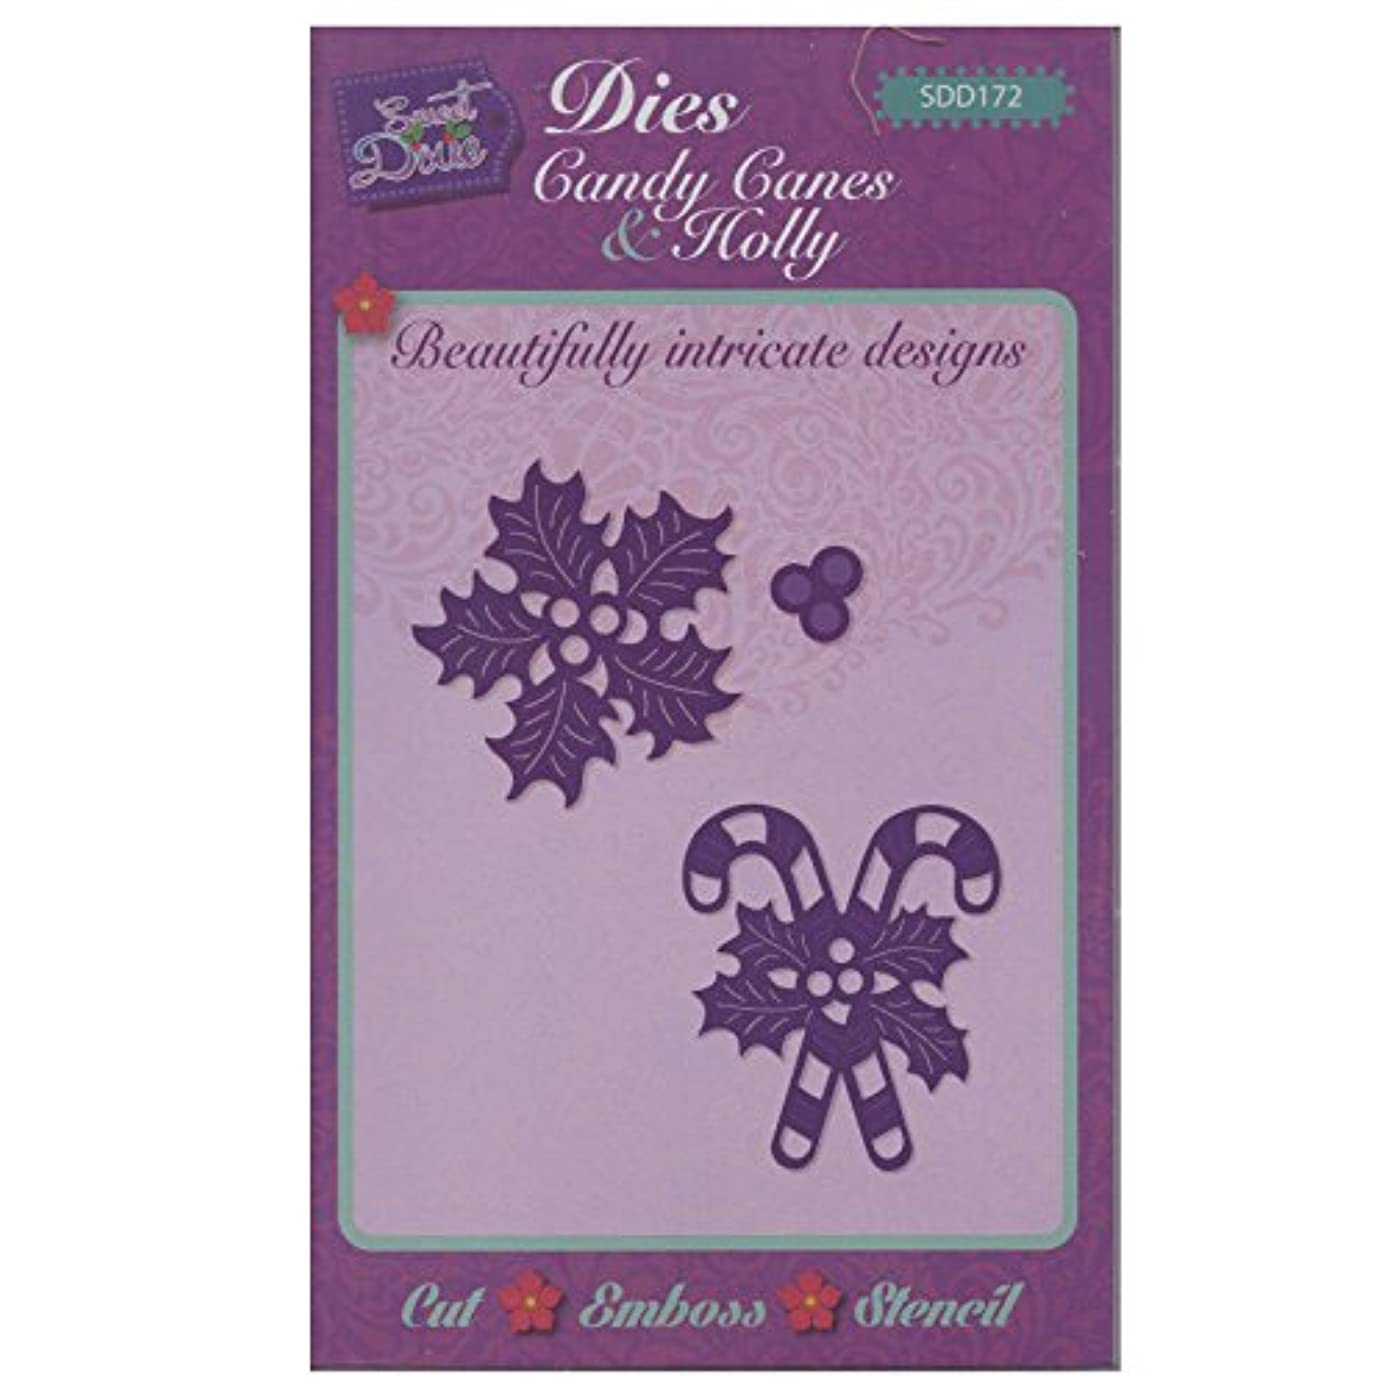 Sweet Dixie SDD172 Festive Craft Die - Candy Canes & Holly